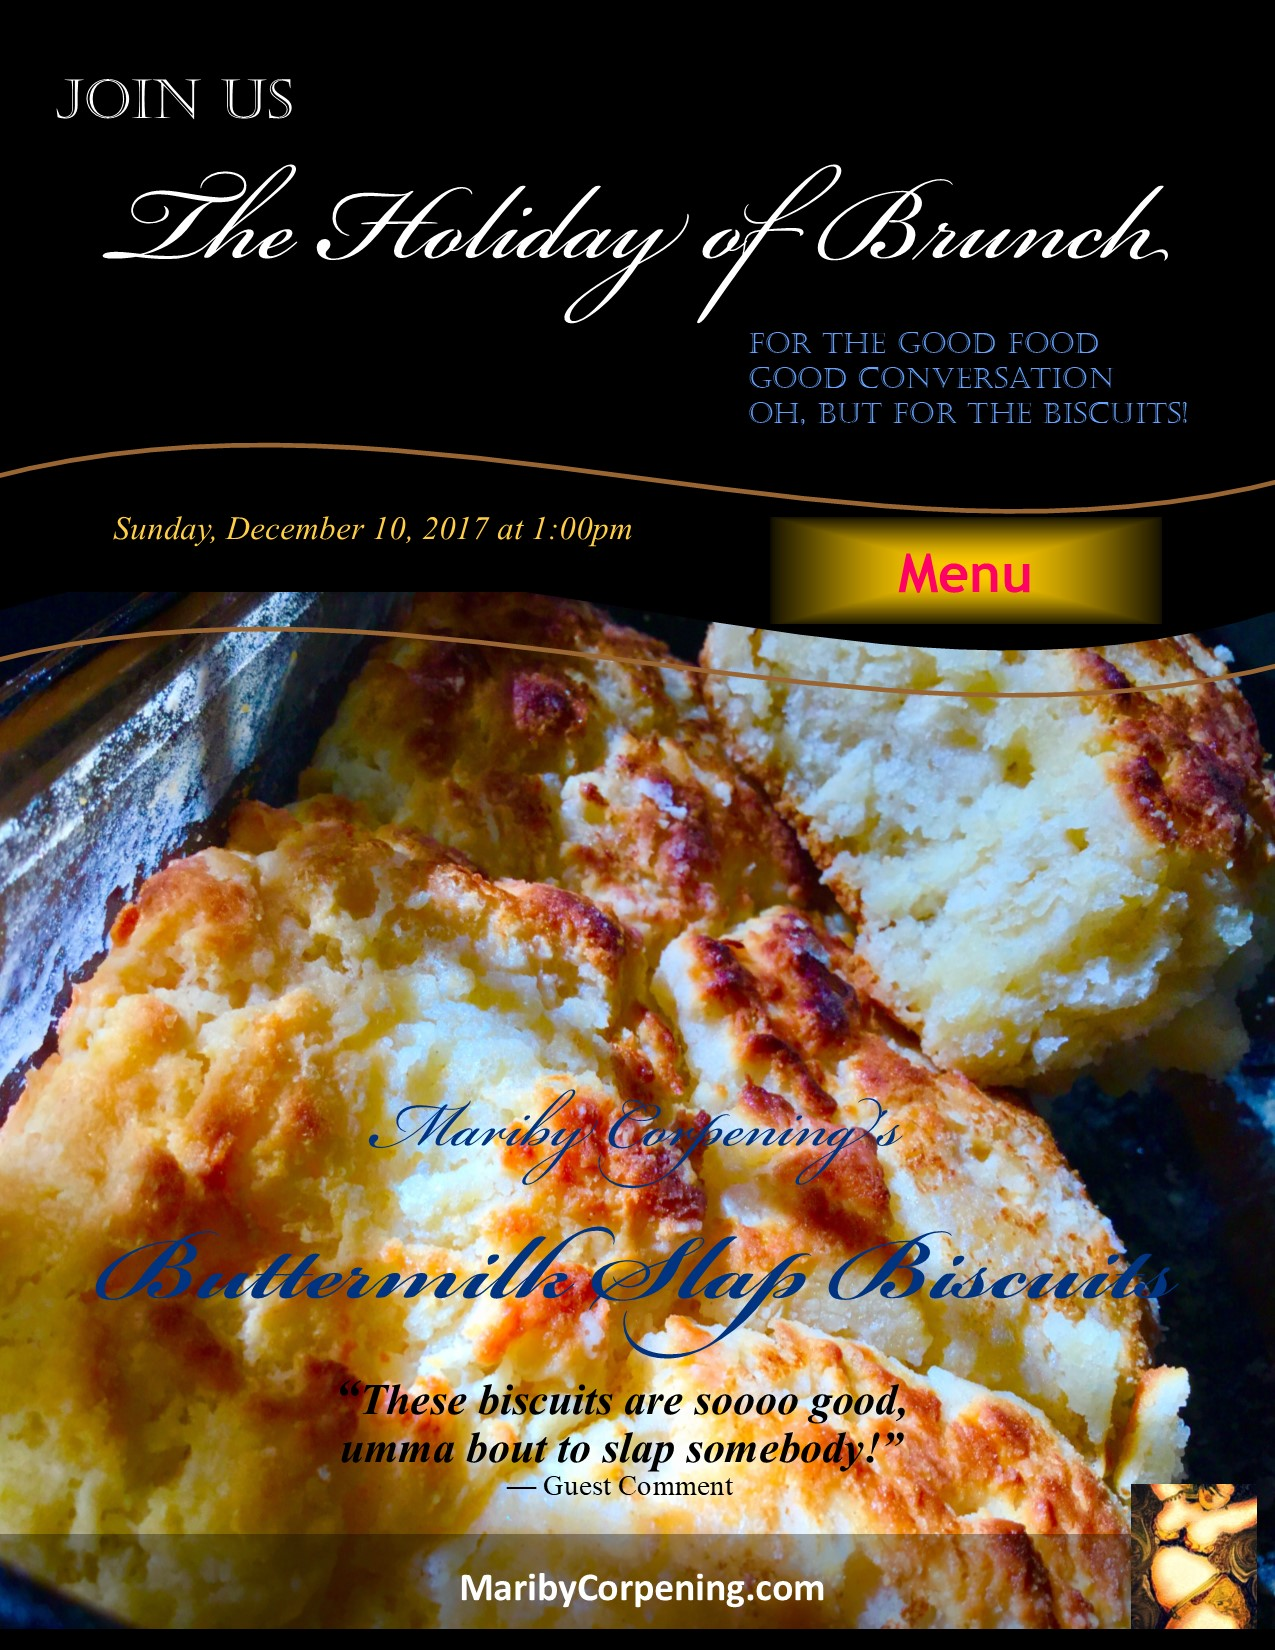 Featuring A Full Brunch Menu With Mariby Corpening's Infamous Buttermilk Slap Biscuits!